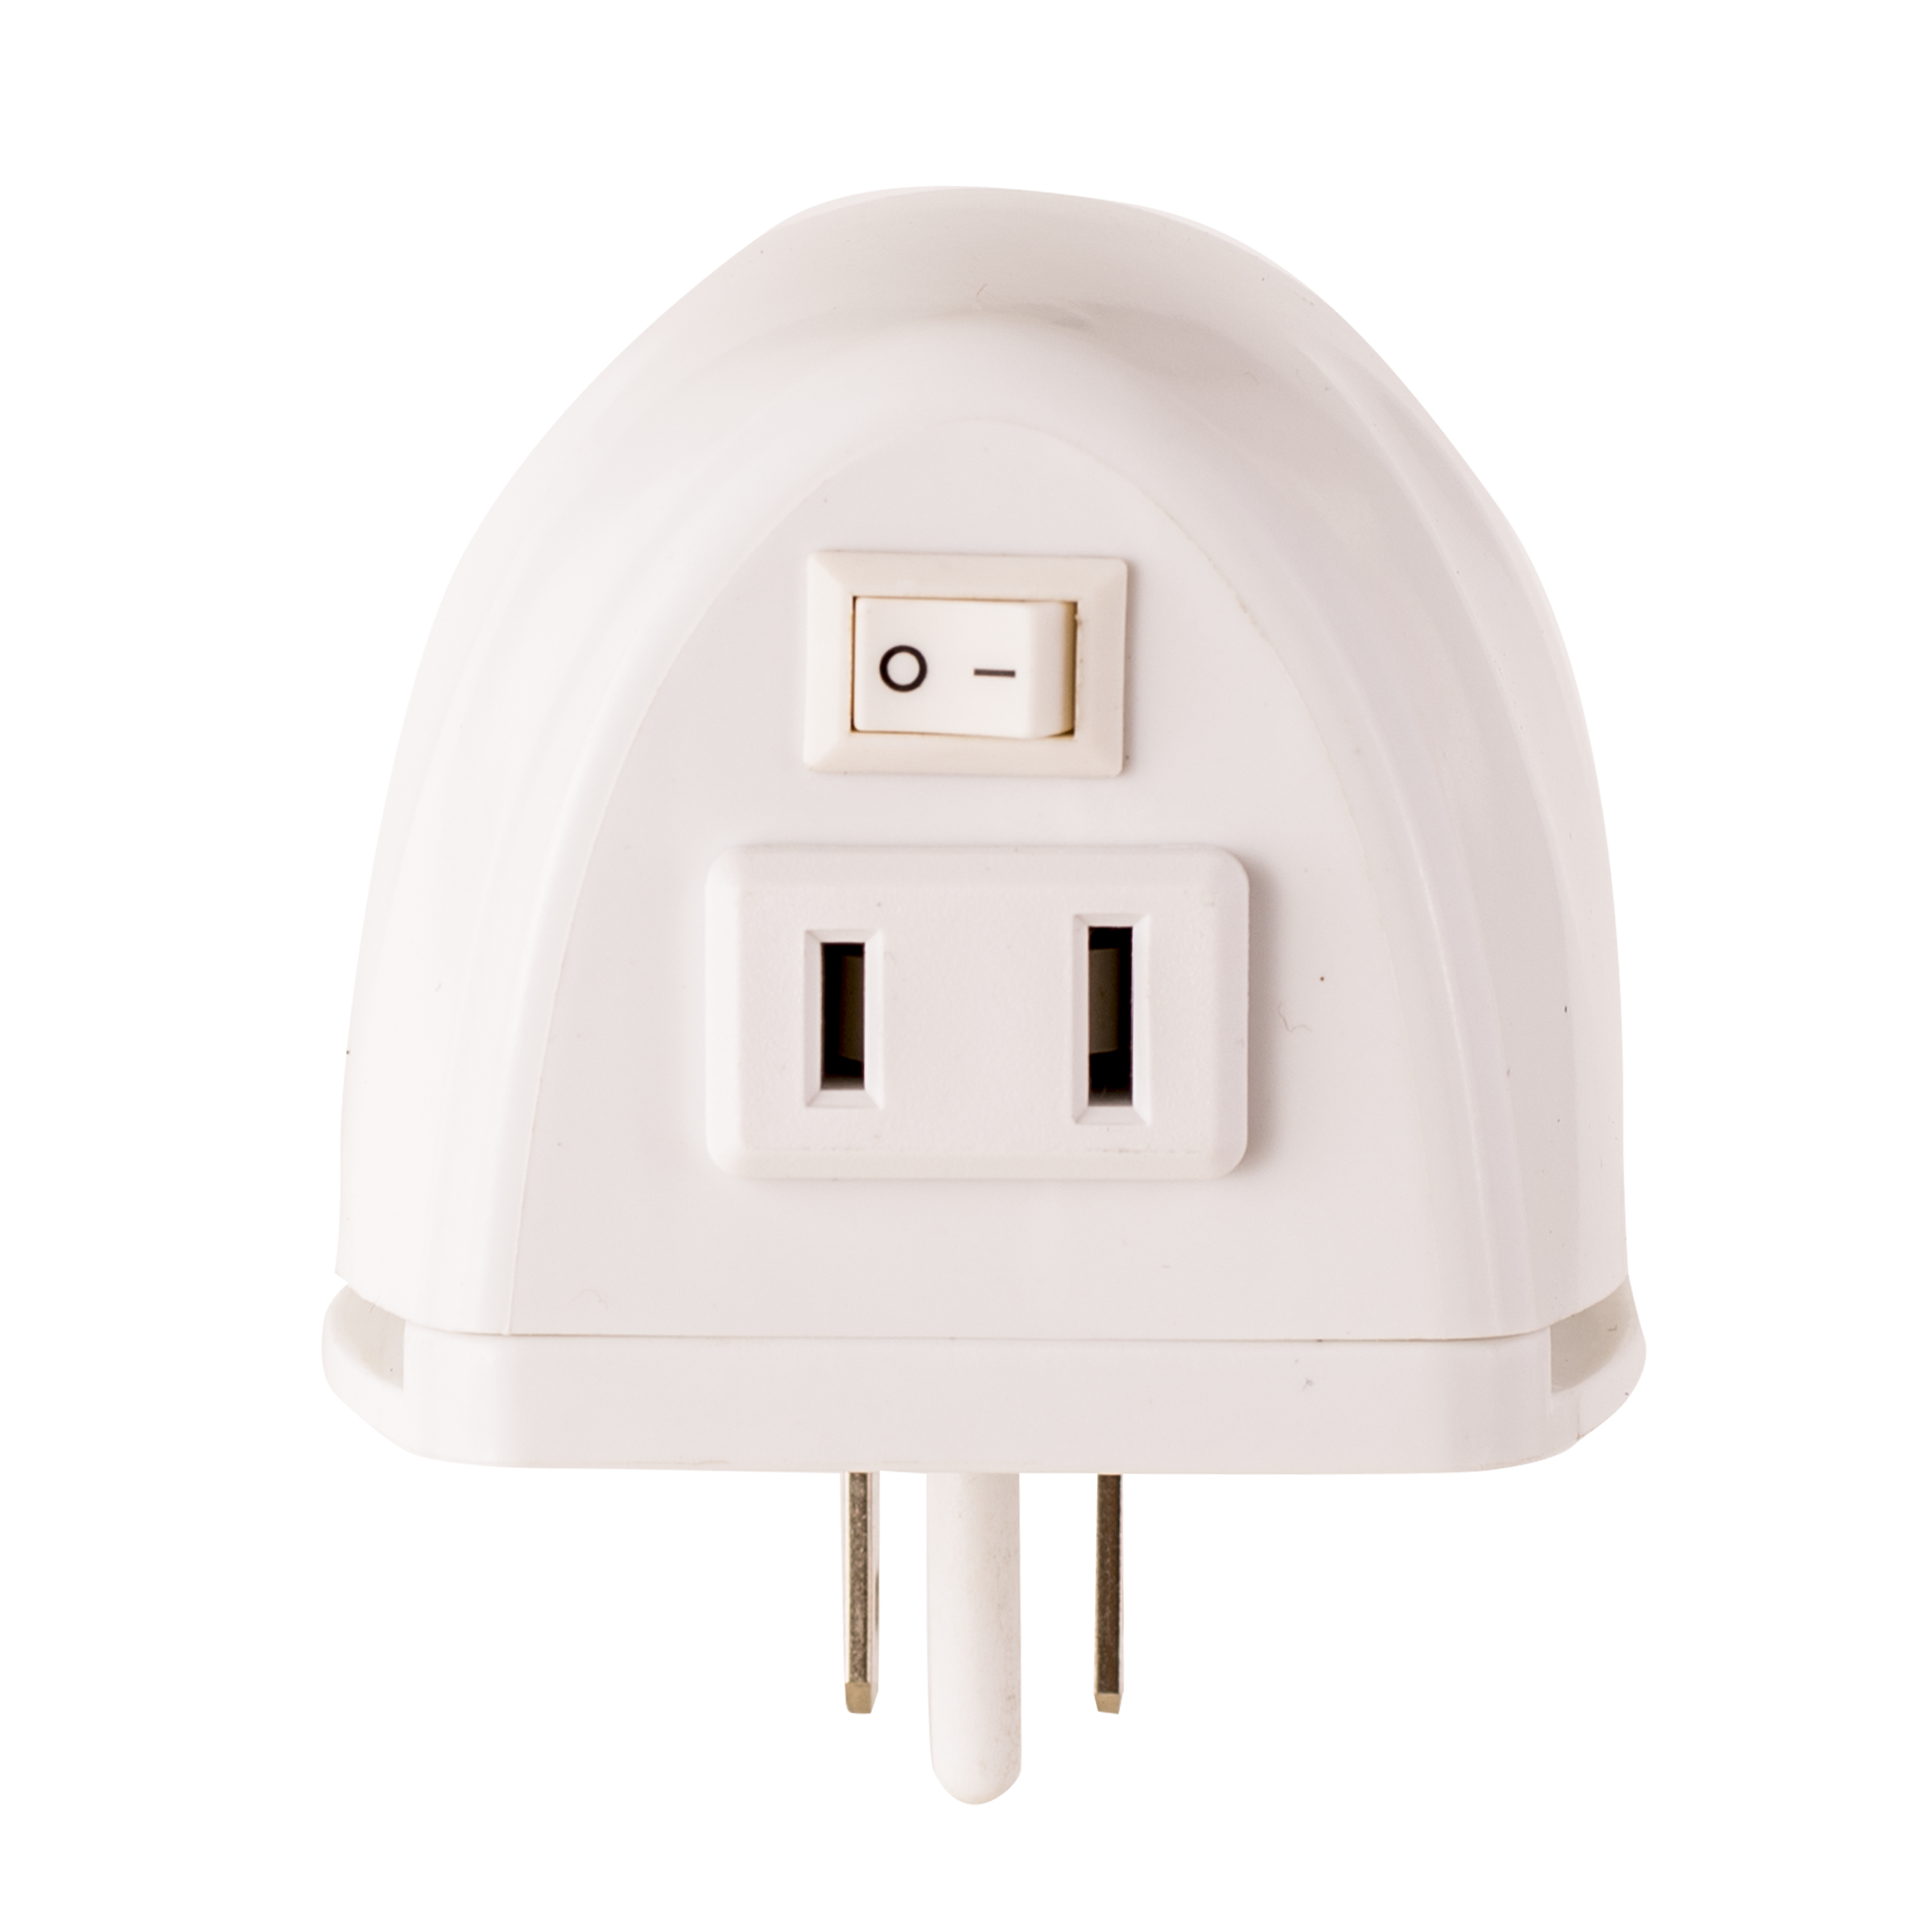 - Extra power outlet